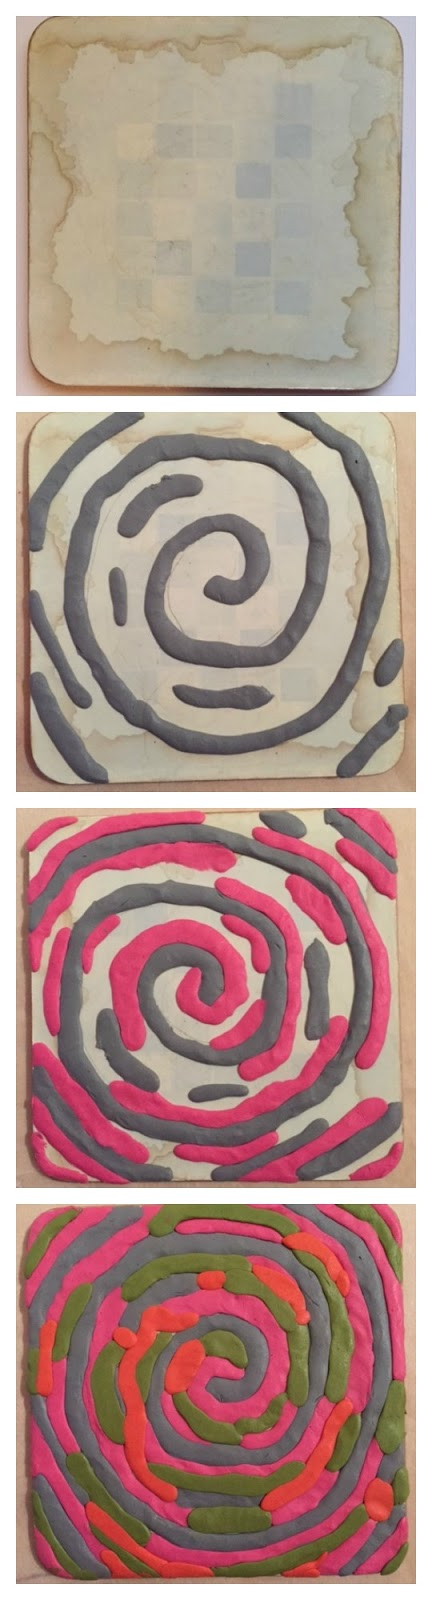 How to make a Sugru spiral upcycled coaster